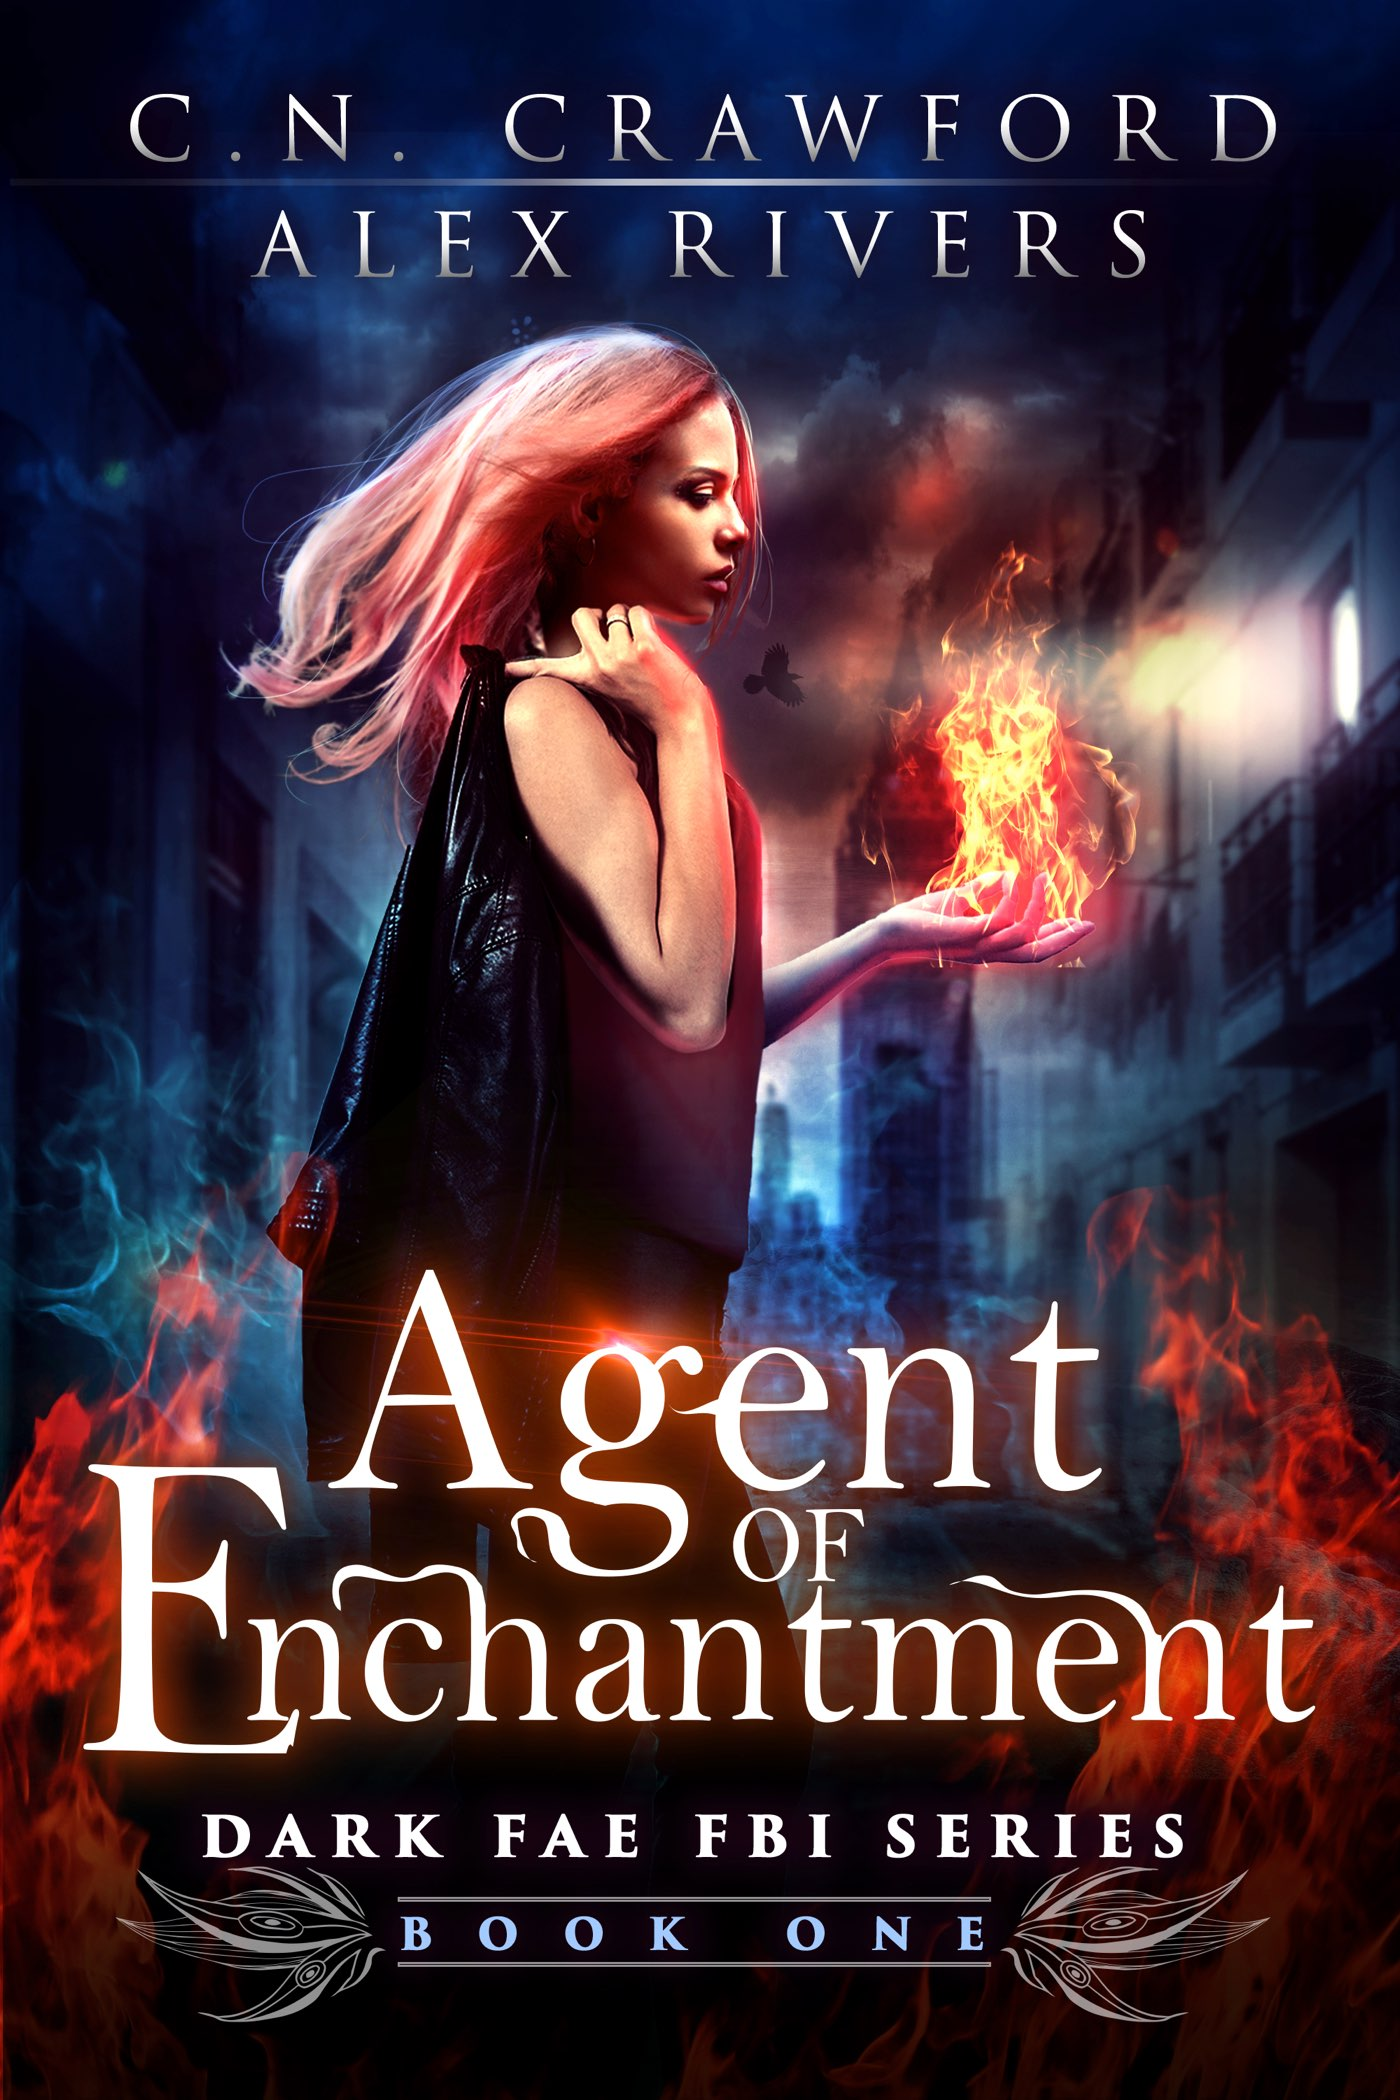 Agent-of-Enchantment-Nook.jpg